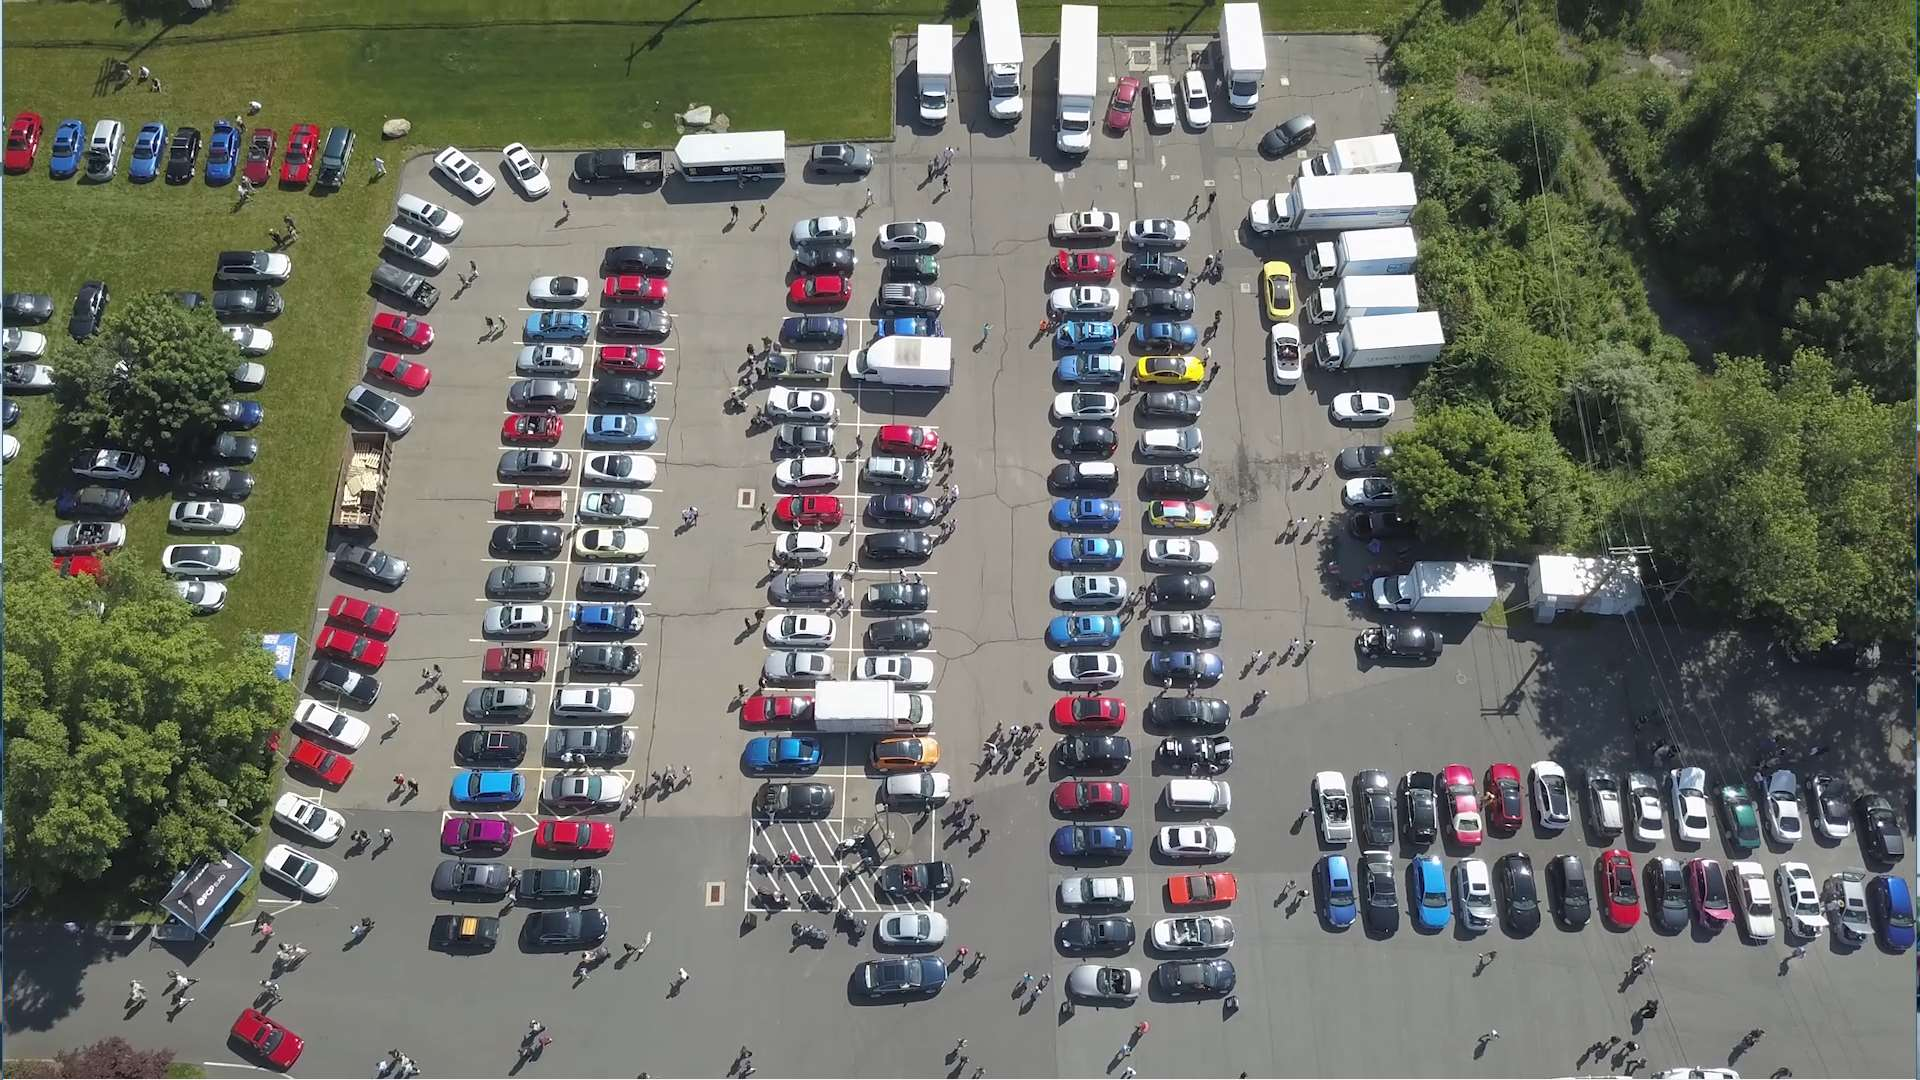 FCP Euro Cars and Coffee Lot Drone